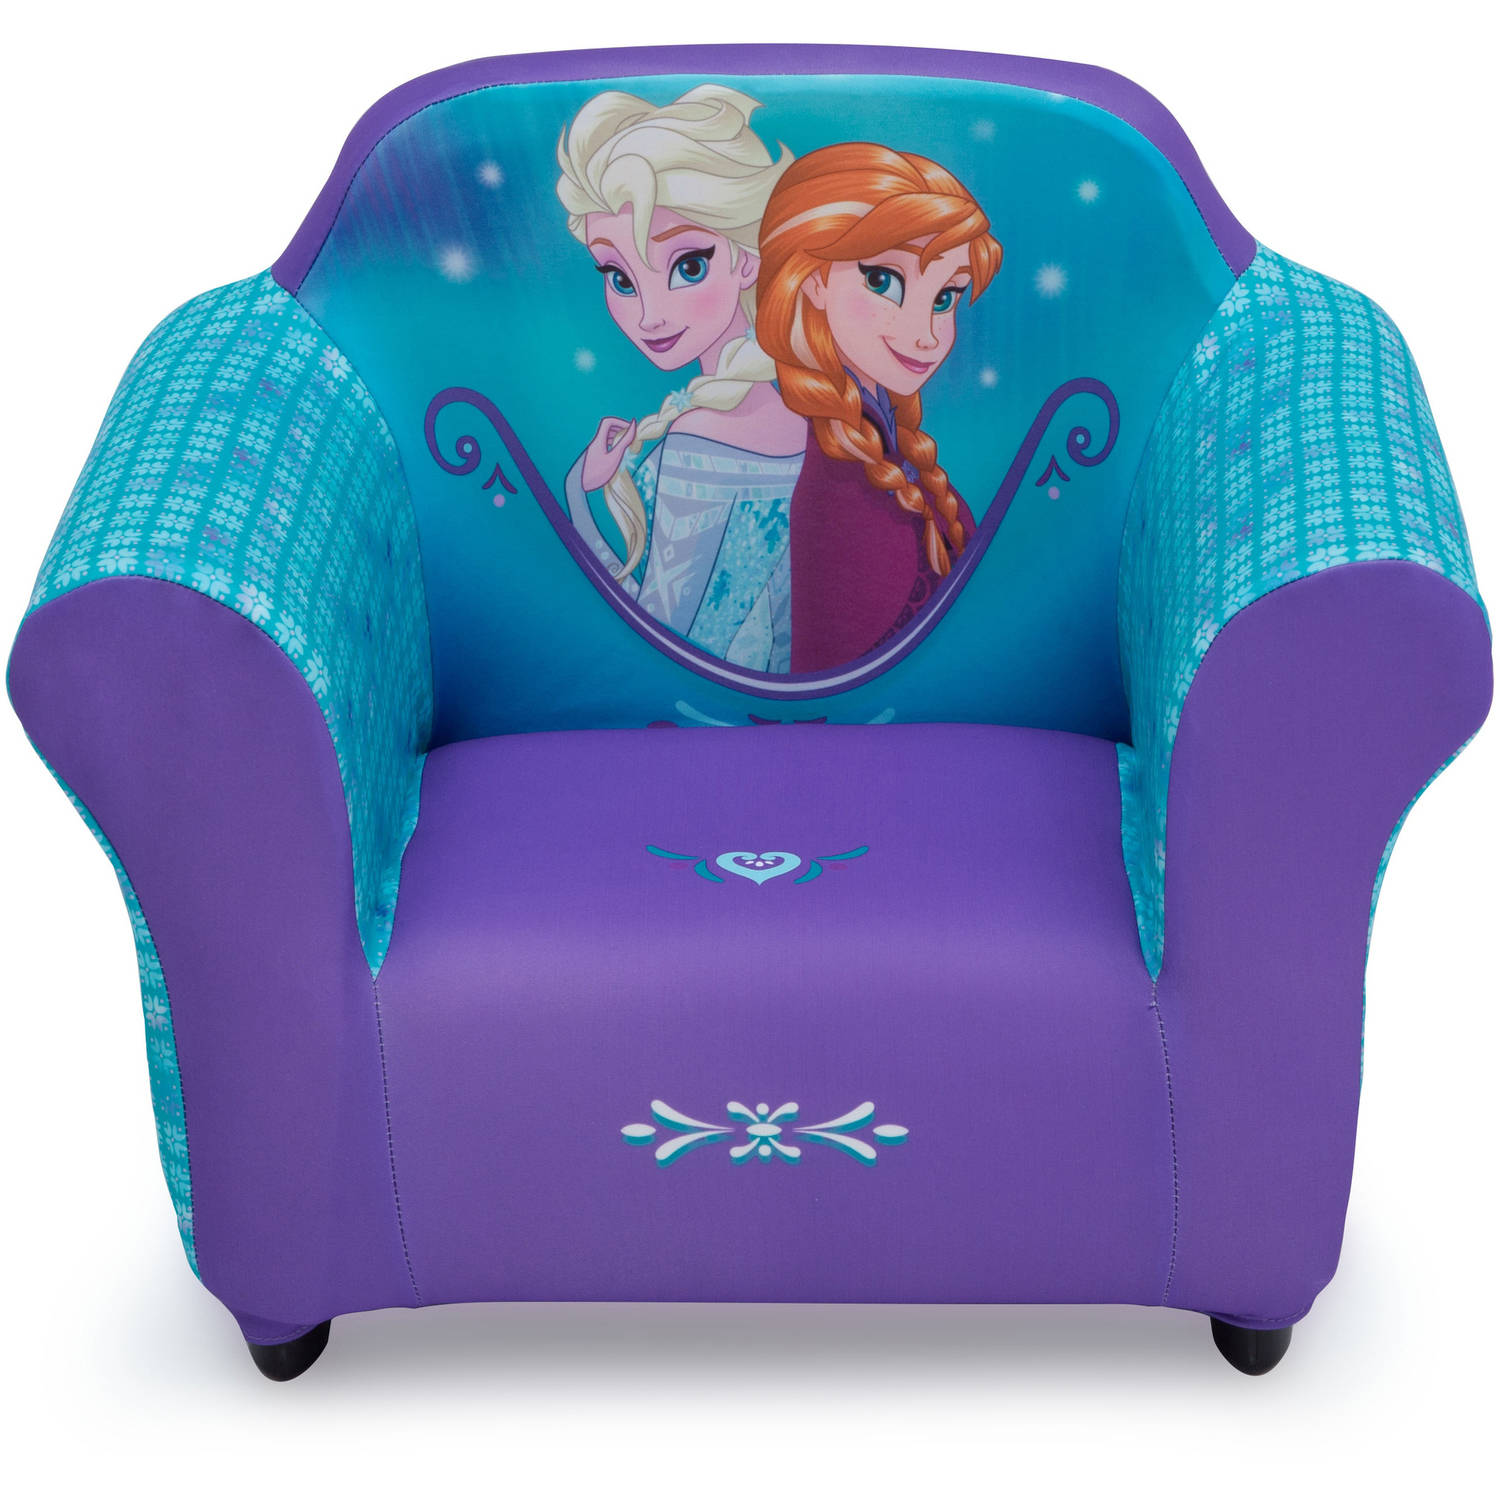 Frozen Upholstered Toddler Chair   Walmart.com